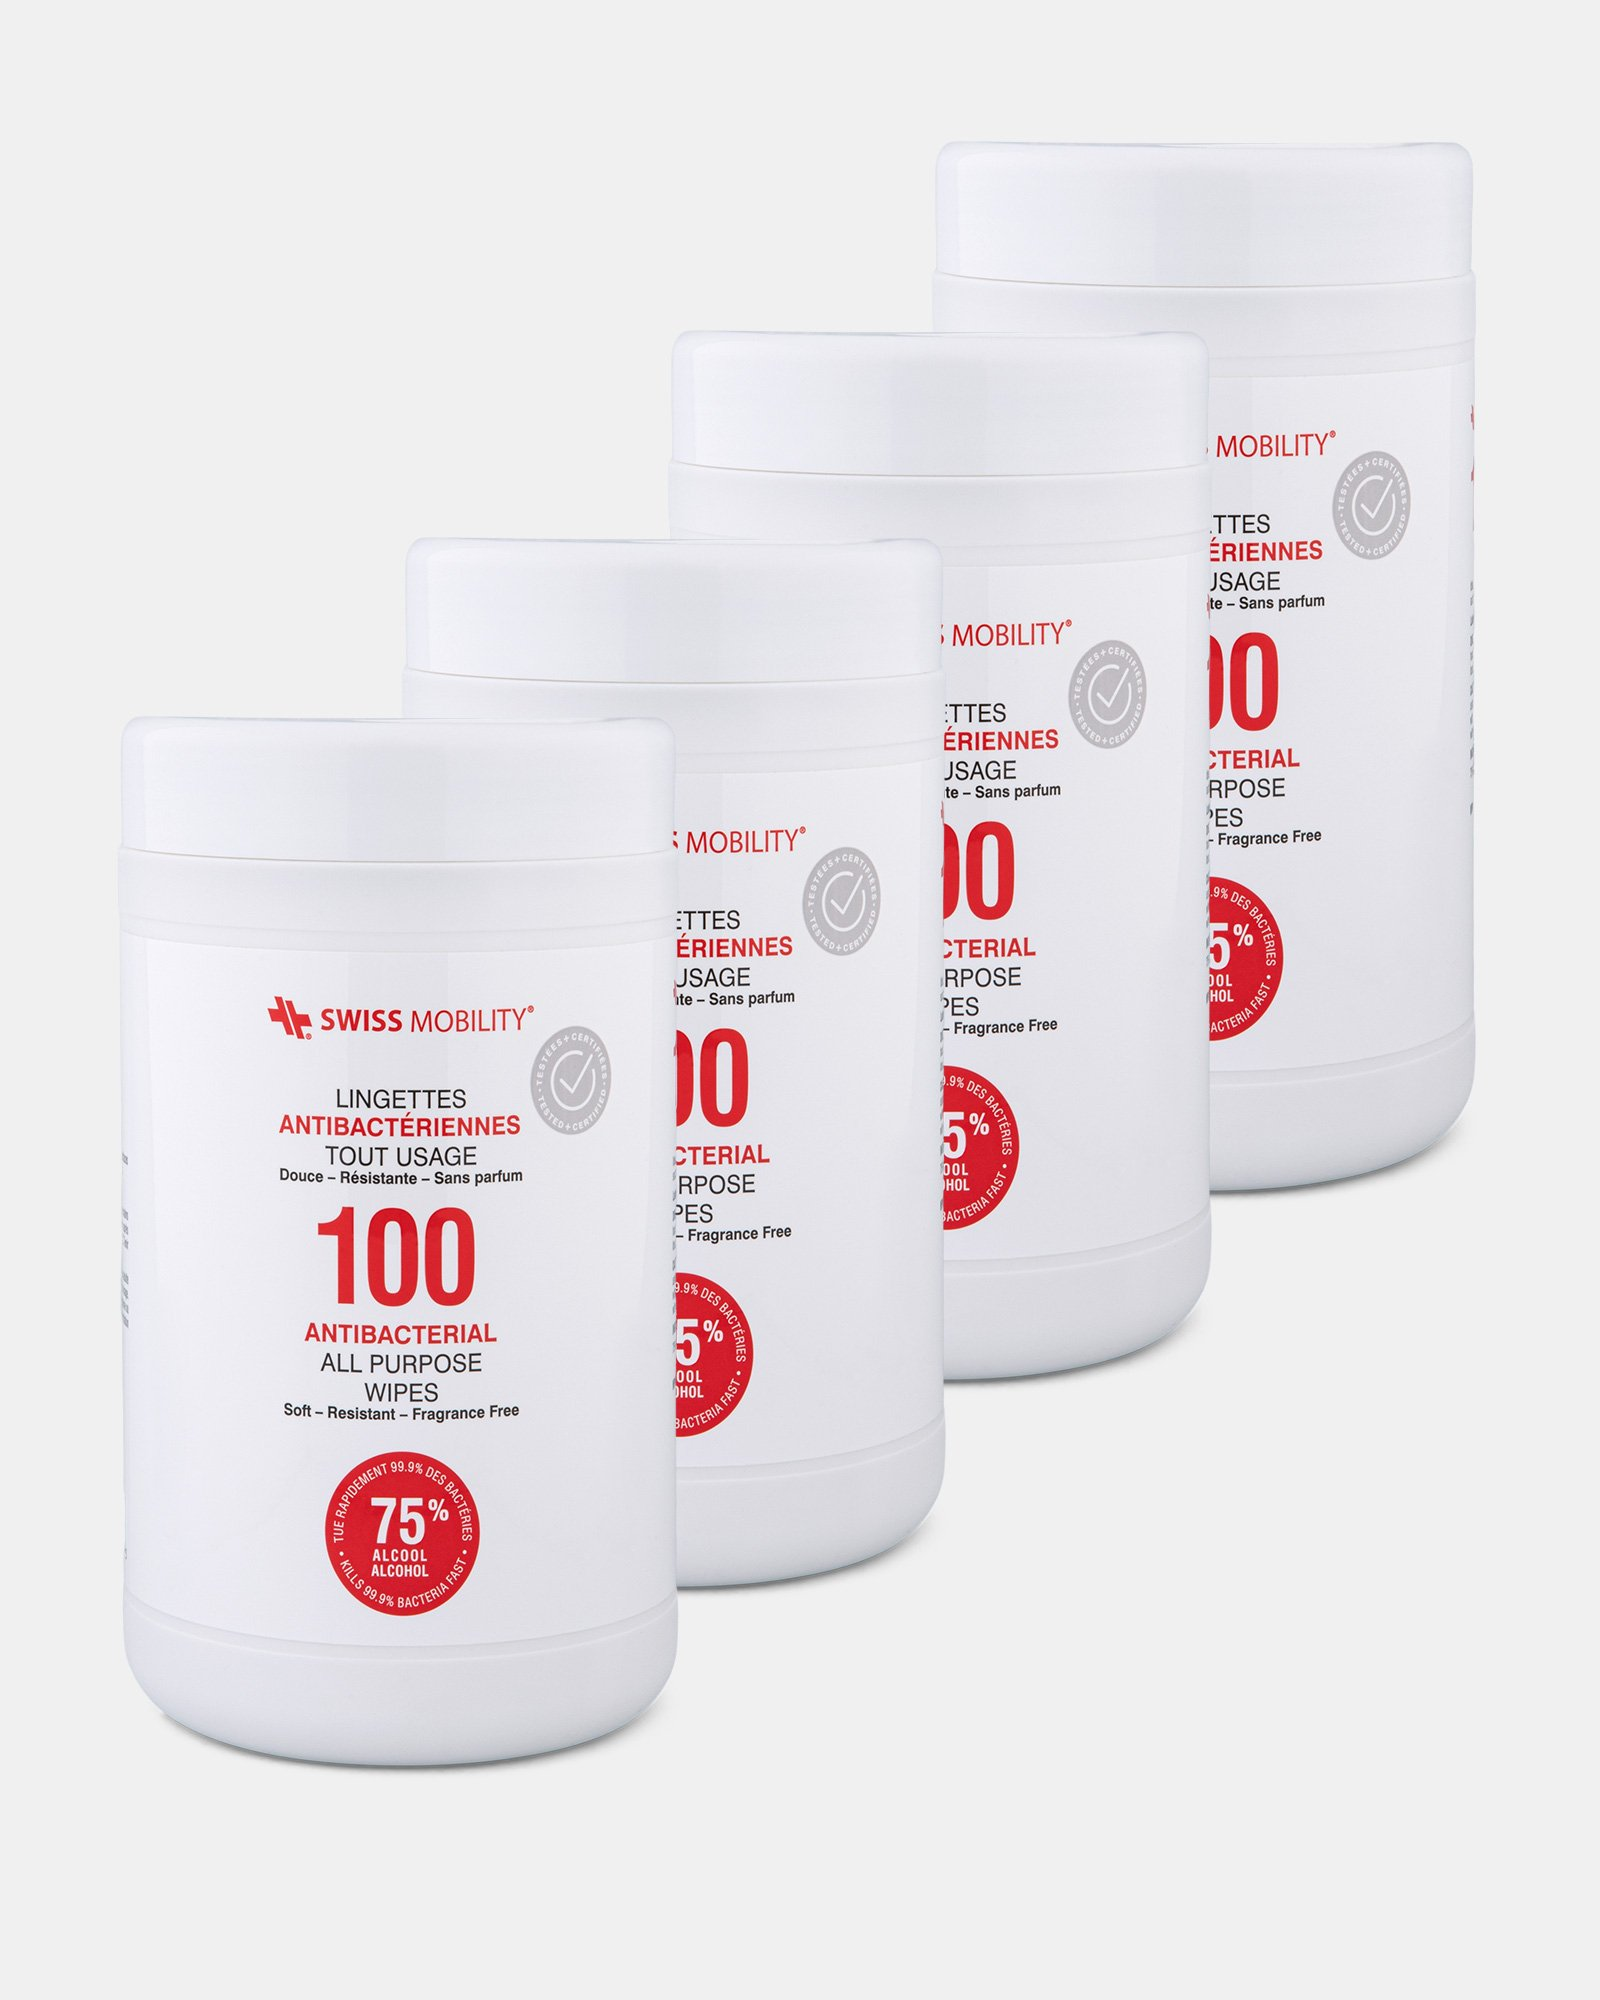 Swiss Mobility - Pack of 4 Canister of 100 Antibacterial wipes  -  75% alcohol, 25% water  - Swiss Mobility - Zoom